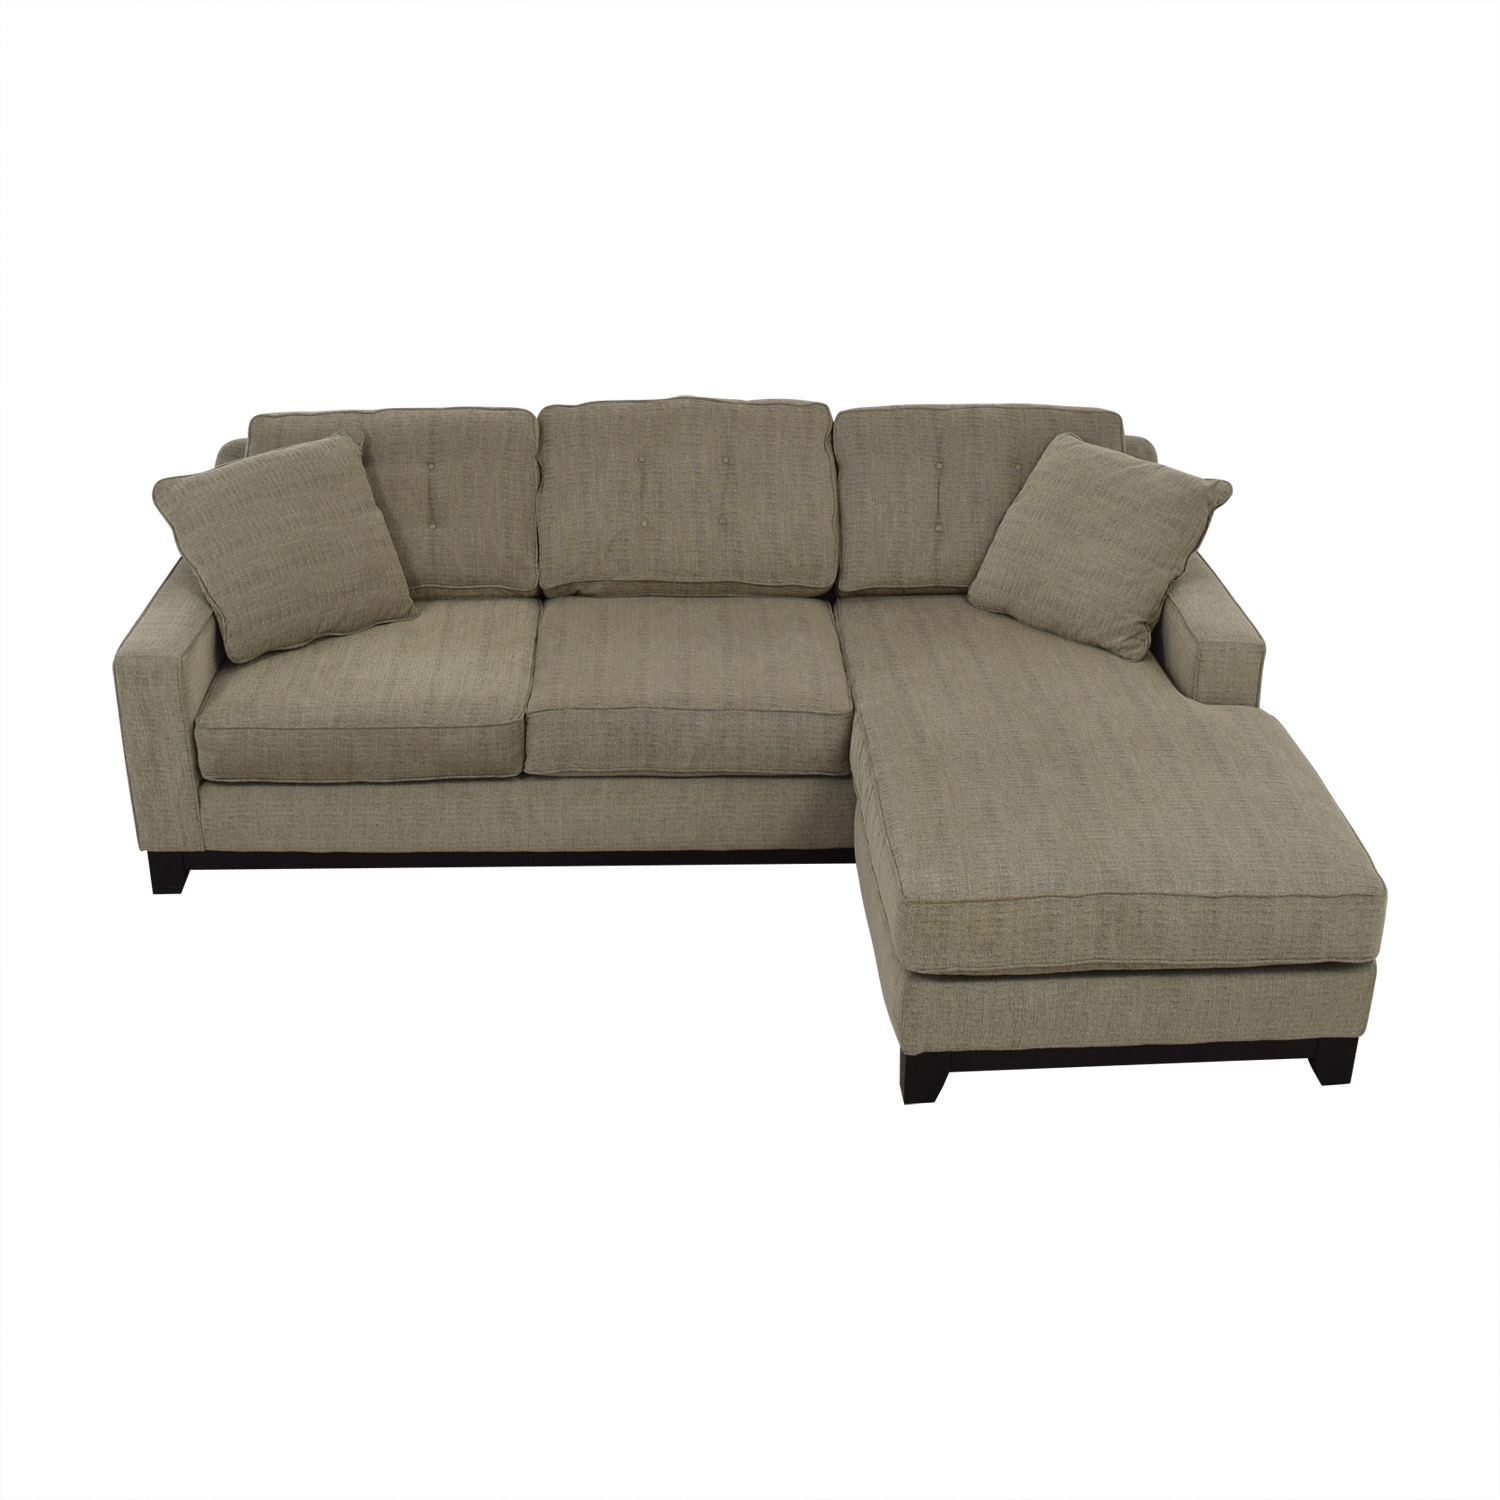 Macy's Macy's Gray Chaise Sectional dimensions